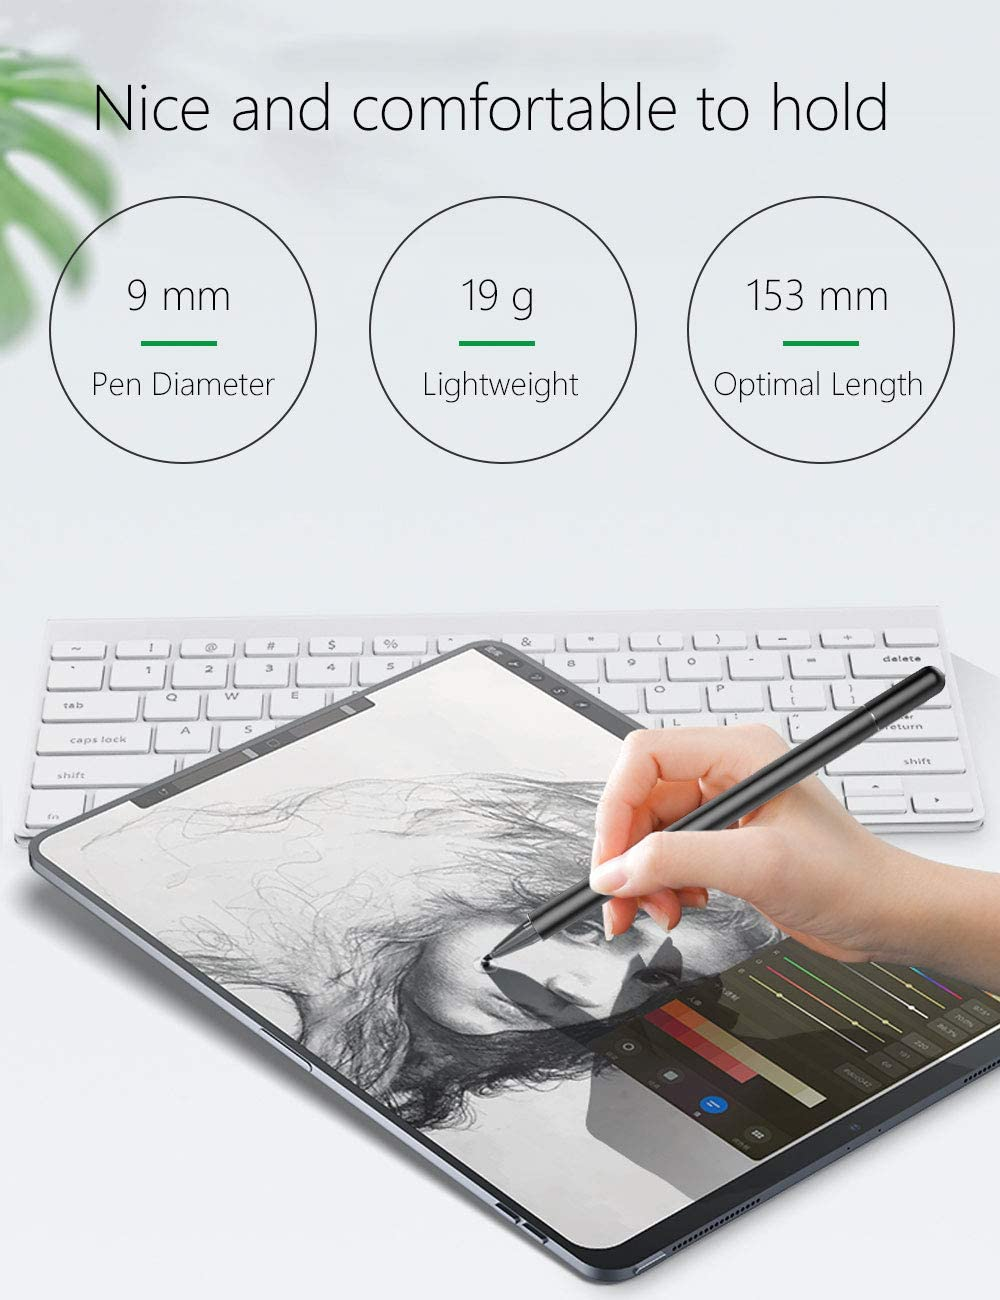 Stylus for Touch Screens Capacitive Stylus Pen with High Sensitivity /& Fine Point Universal for Apple//iPhone//iPad Pro//Mini//Air//Android//Microsoft//Tablet and Touch Screens Stylus for iPad Black